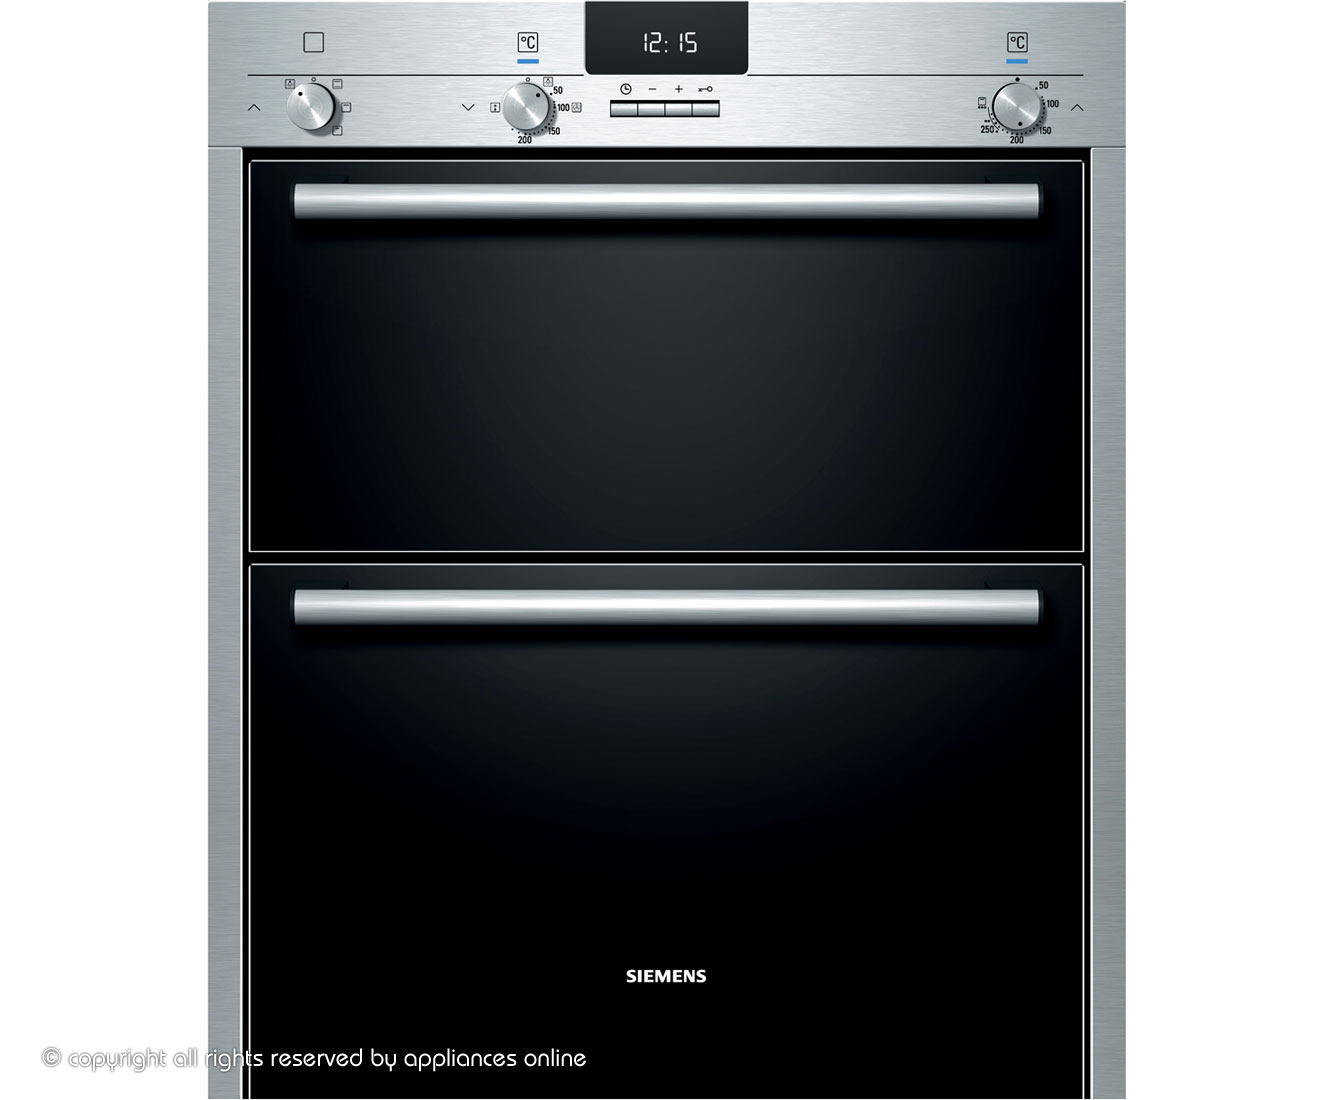 Siemens IQ100 HB13NB521B Built Under Double Oven in Stainless Steel